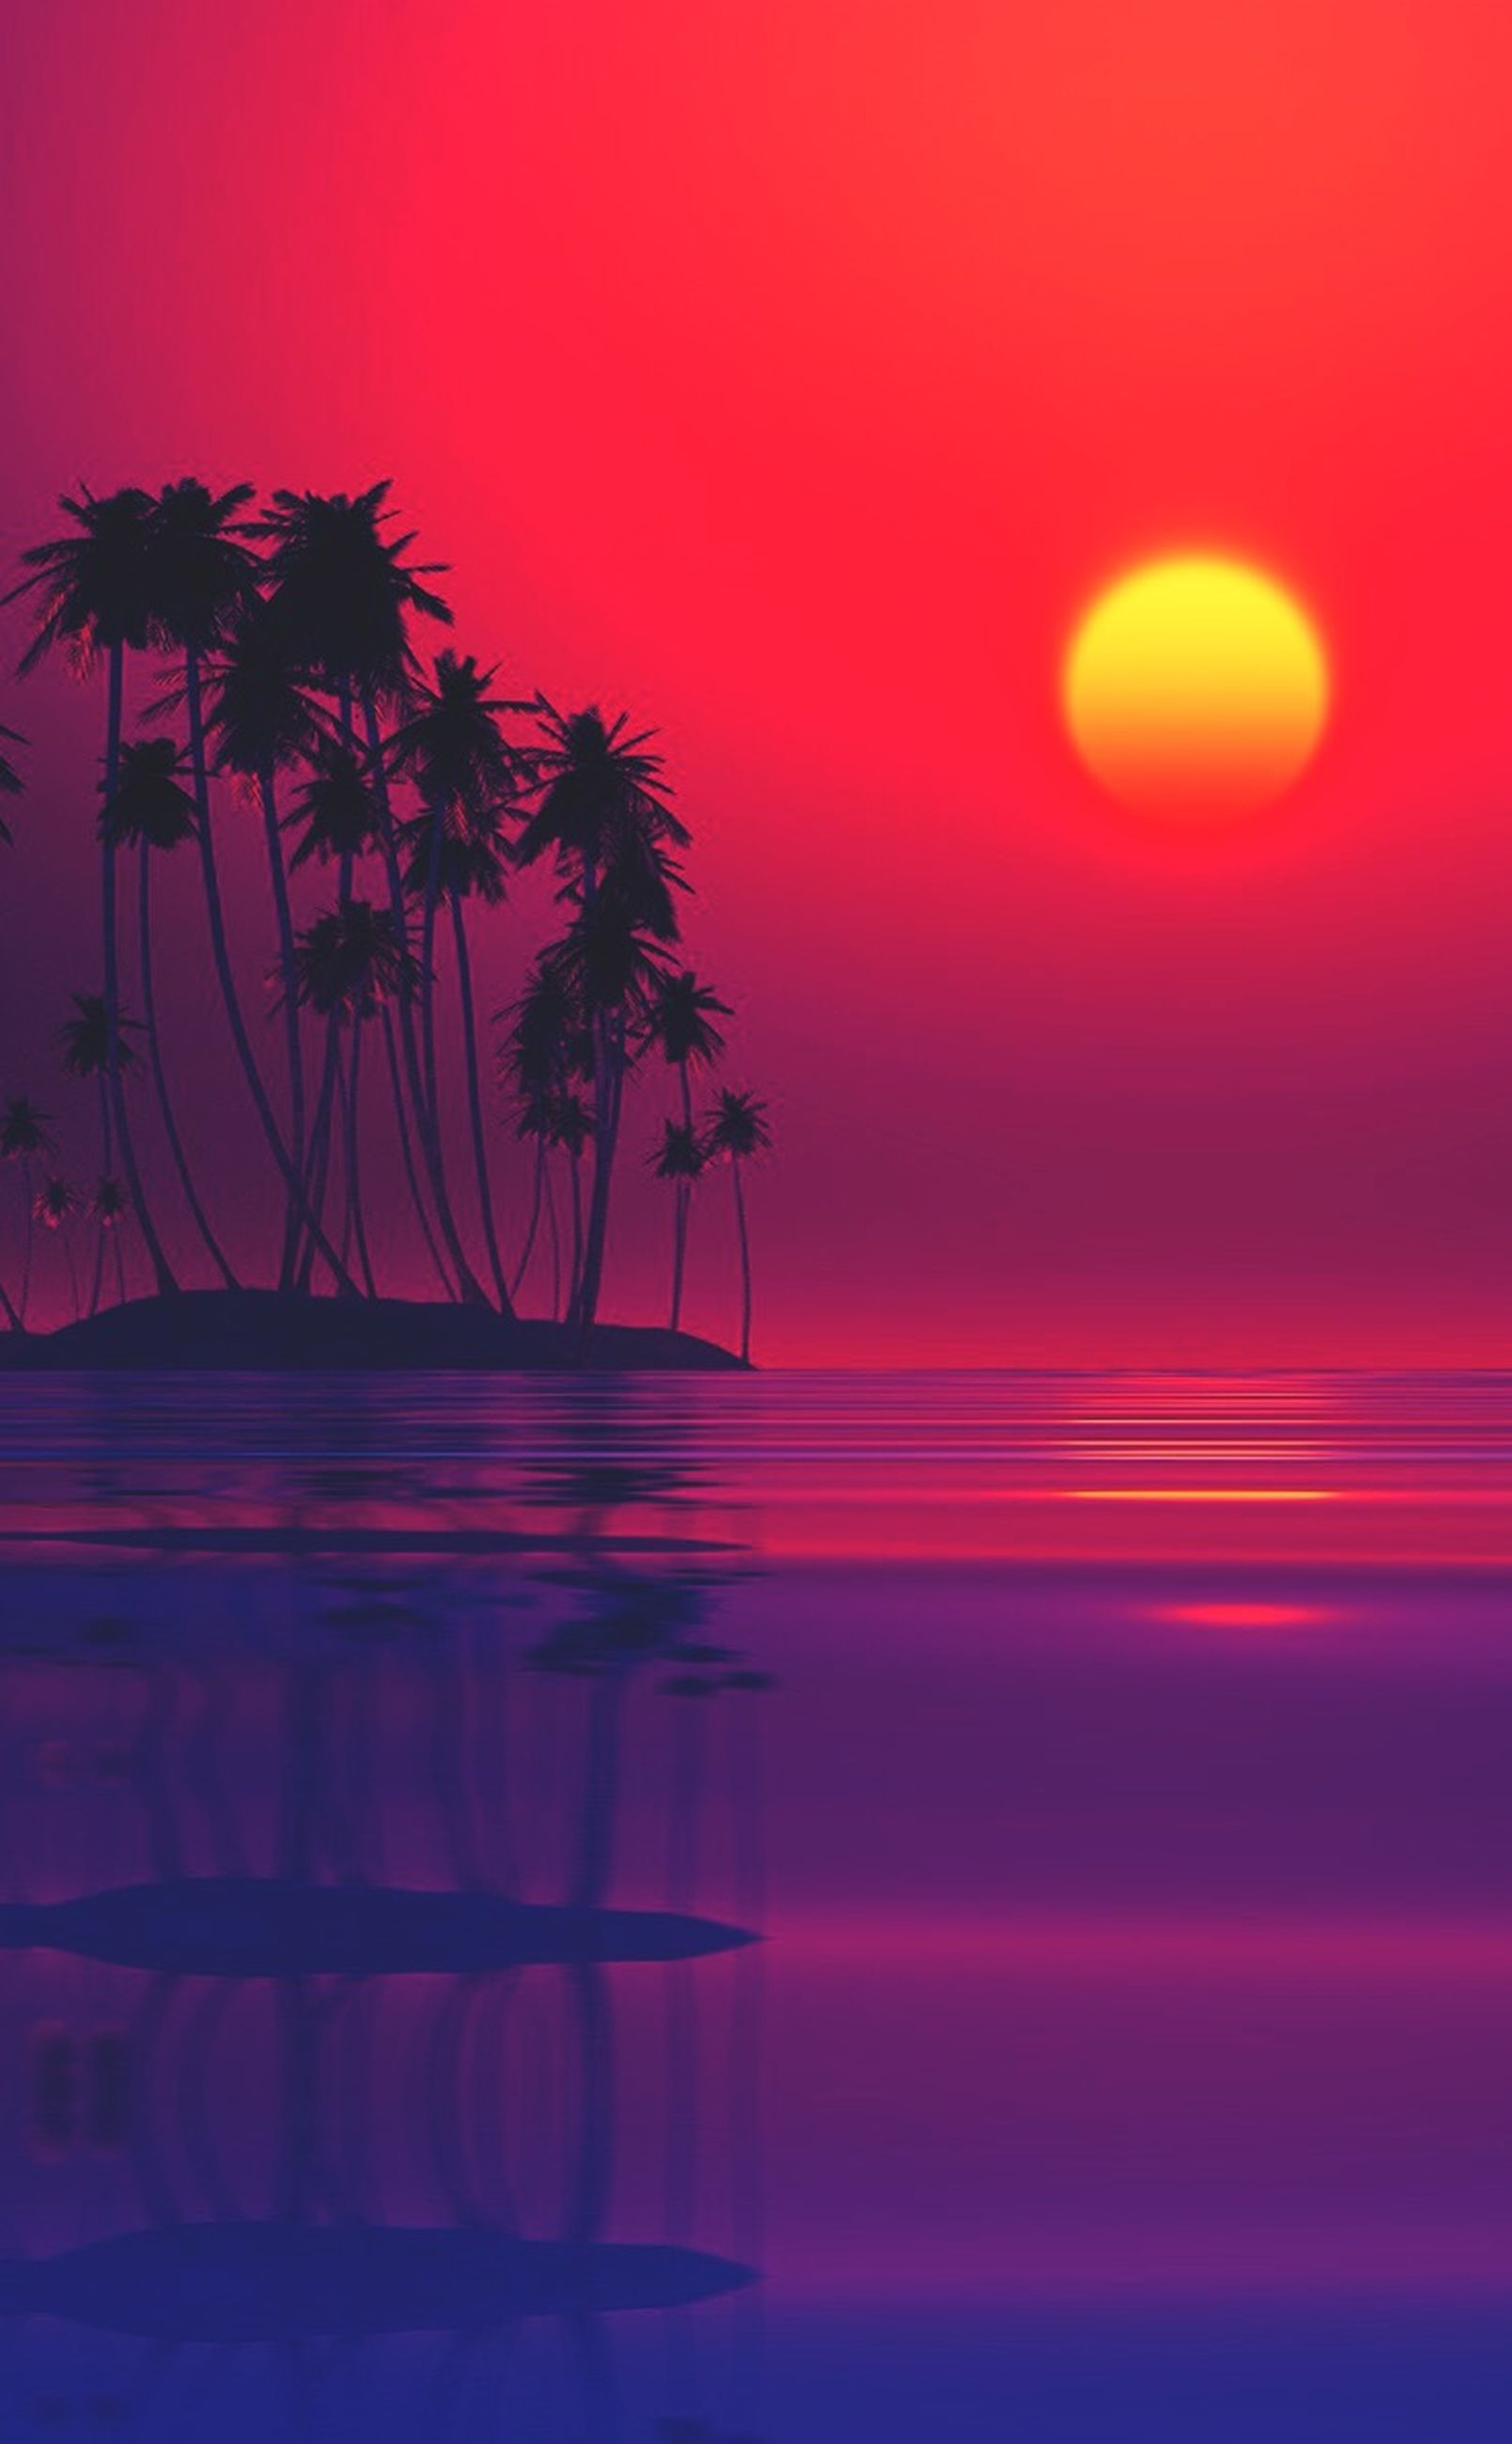 sunset, water, orange color, beauty in nature, scenics, tranquil scene, palm tree, sea, red, tranquility, horizon over water, sky, nature, idyllic, sun, reflection, silhouette, tree, beach, growth